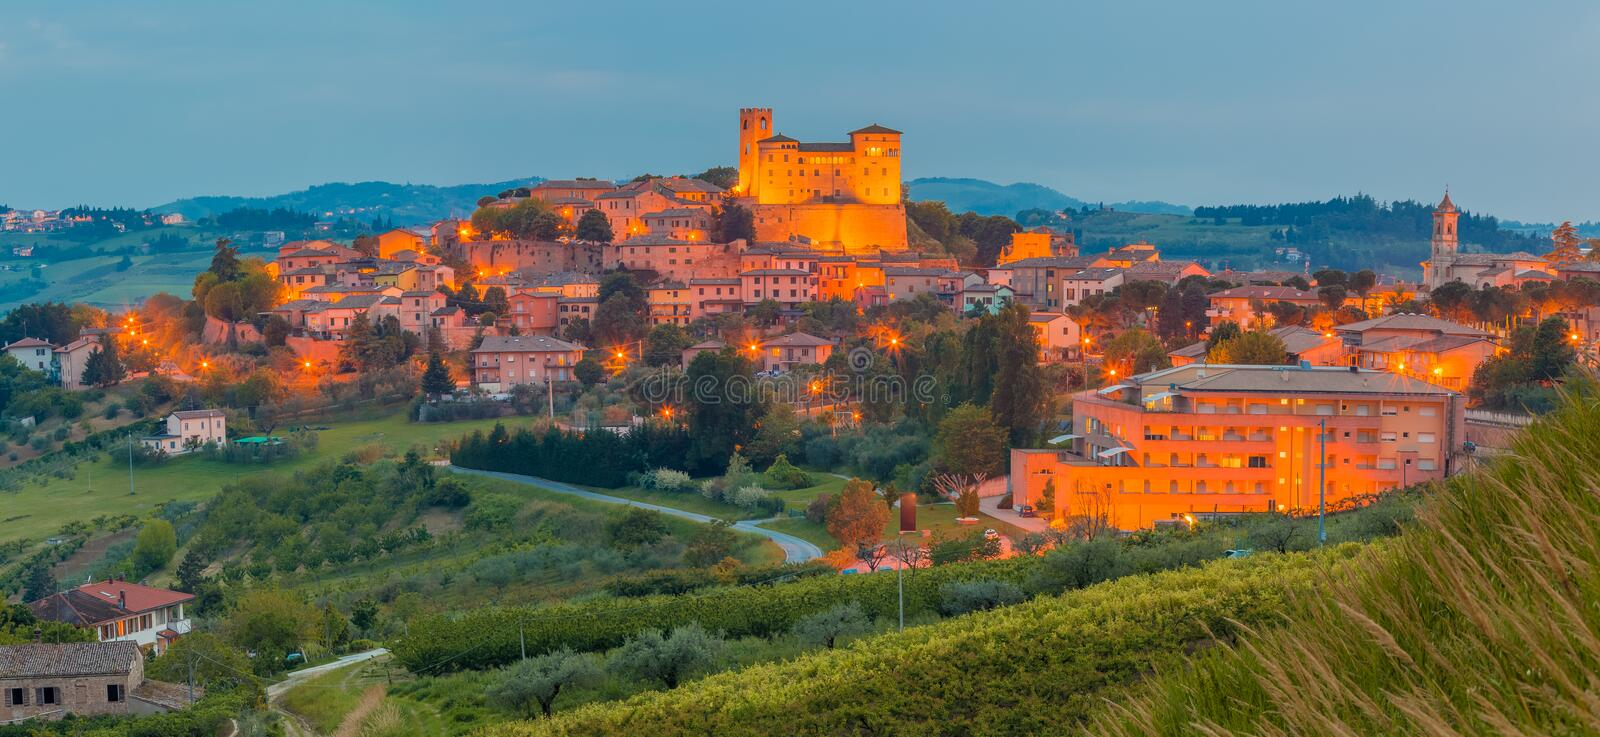 Night view of castle and roofs. Of houses in the tranquility of a medieval village in the hills of Romagna in Italy royalty free stock images